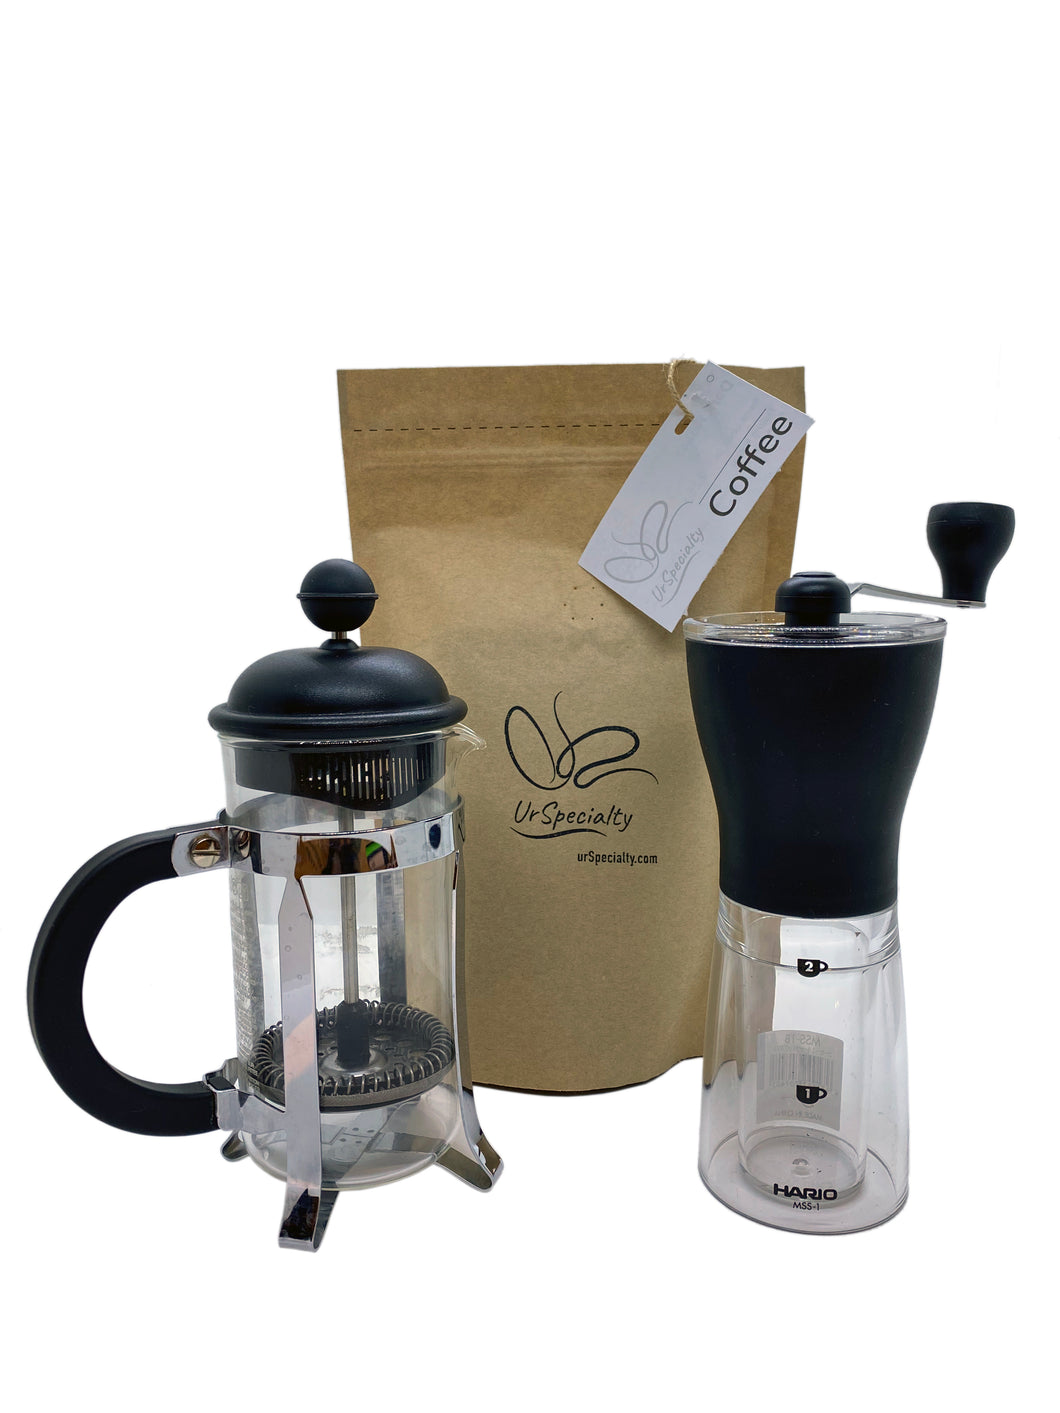 Home Coffee Starter Kit - Grinder, French Press, & Beans